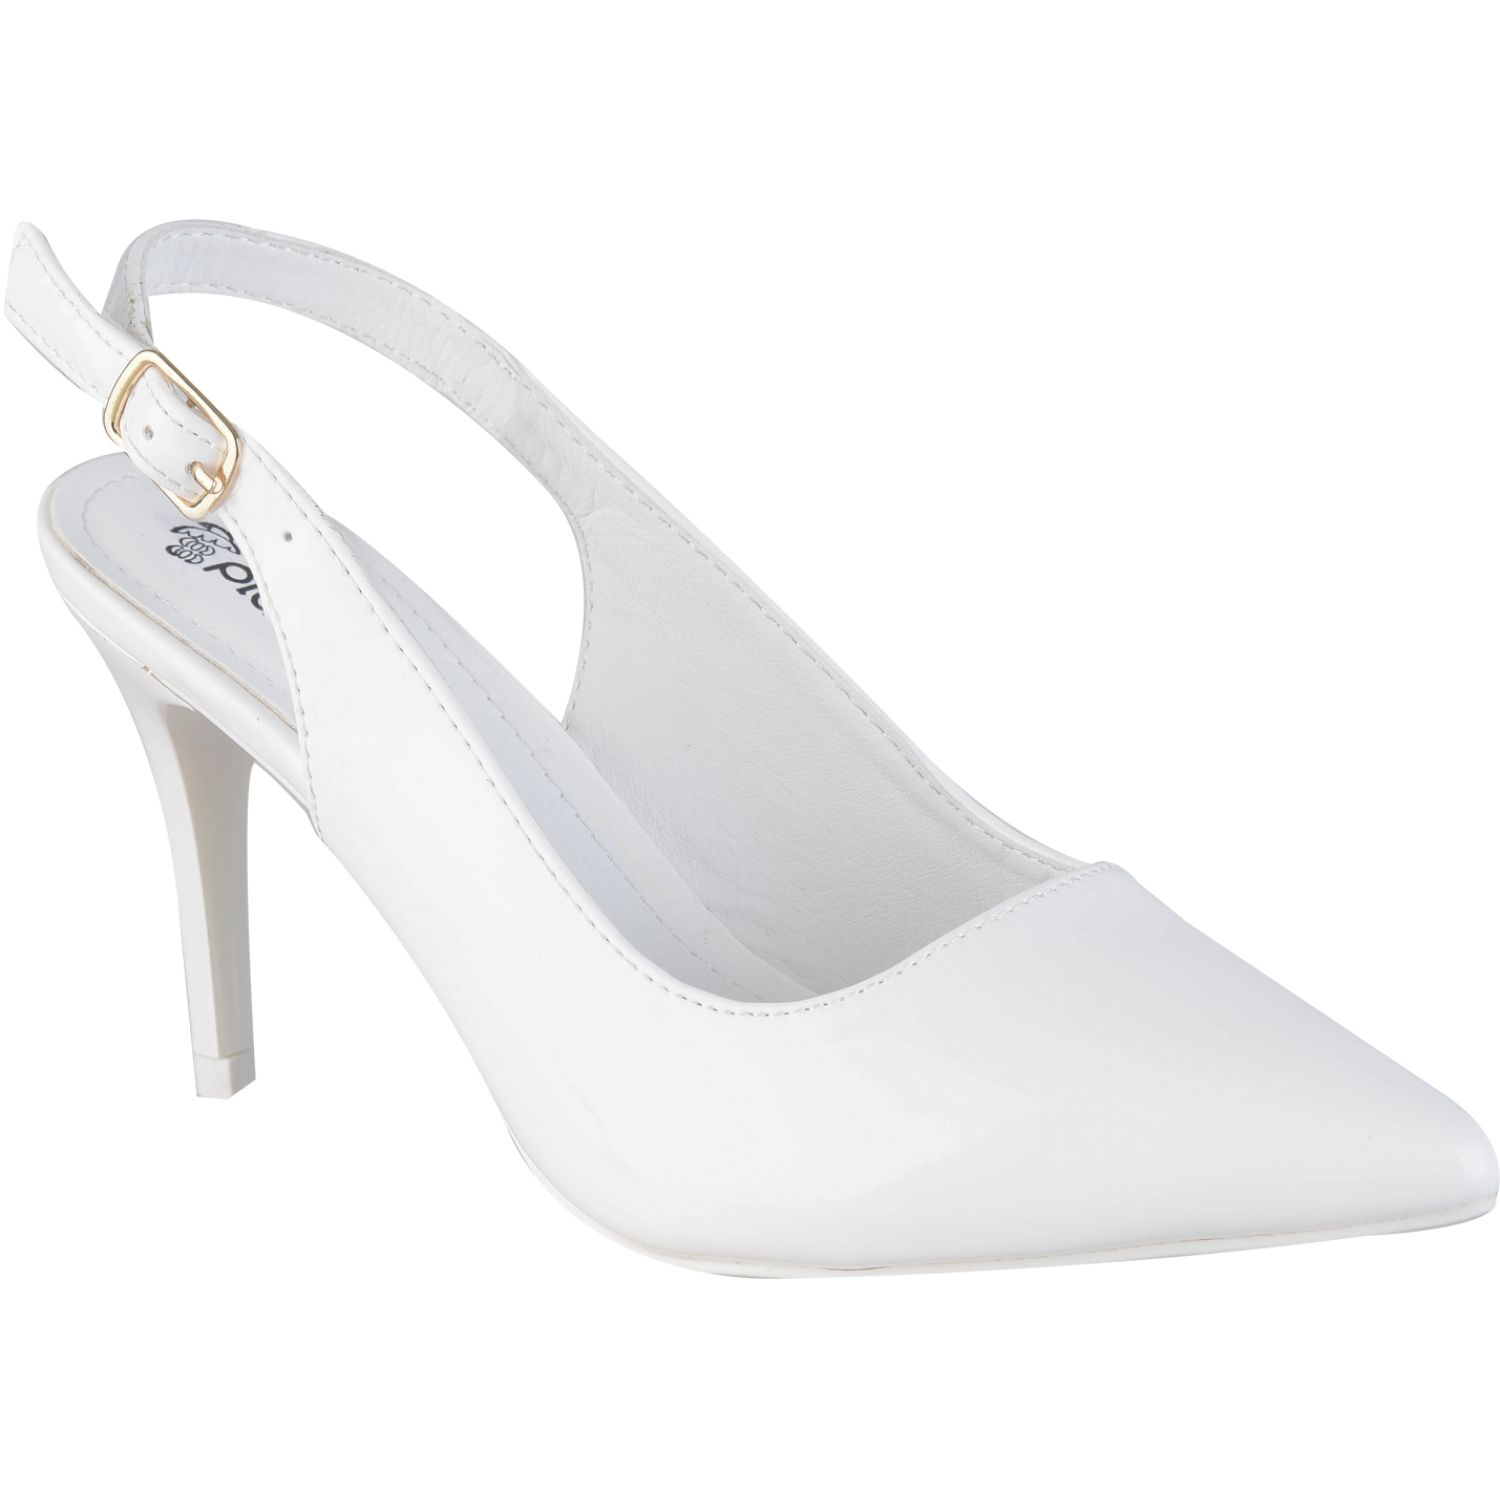 Platanitos cv 502ch Blanco Estiletos y Pumps